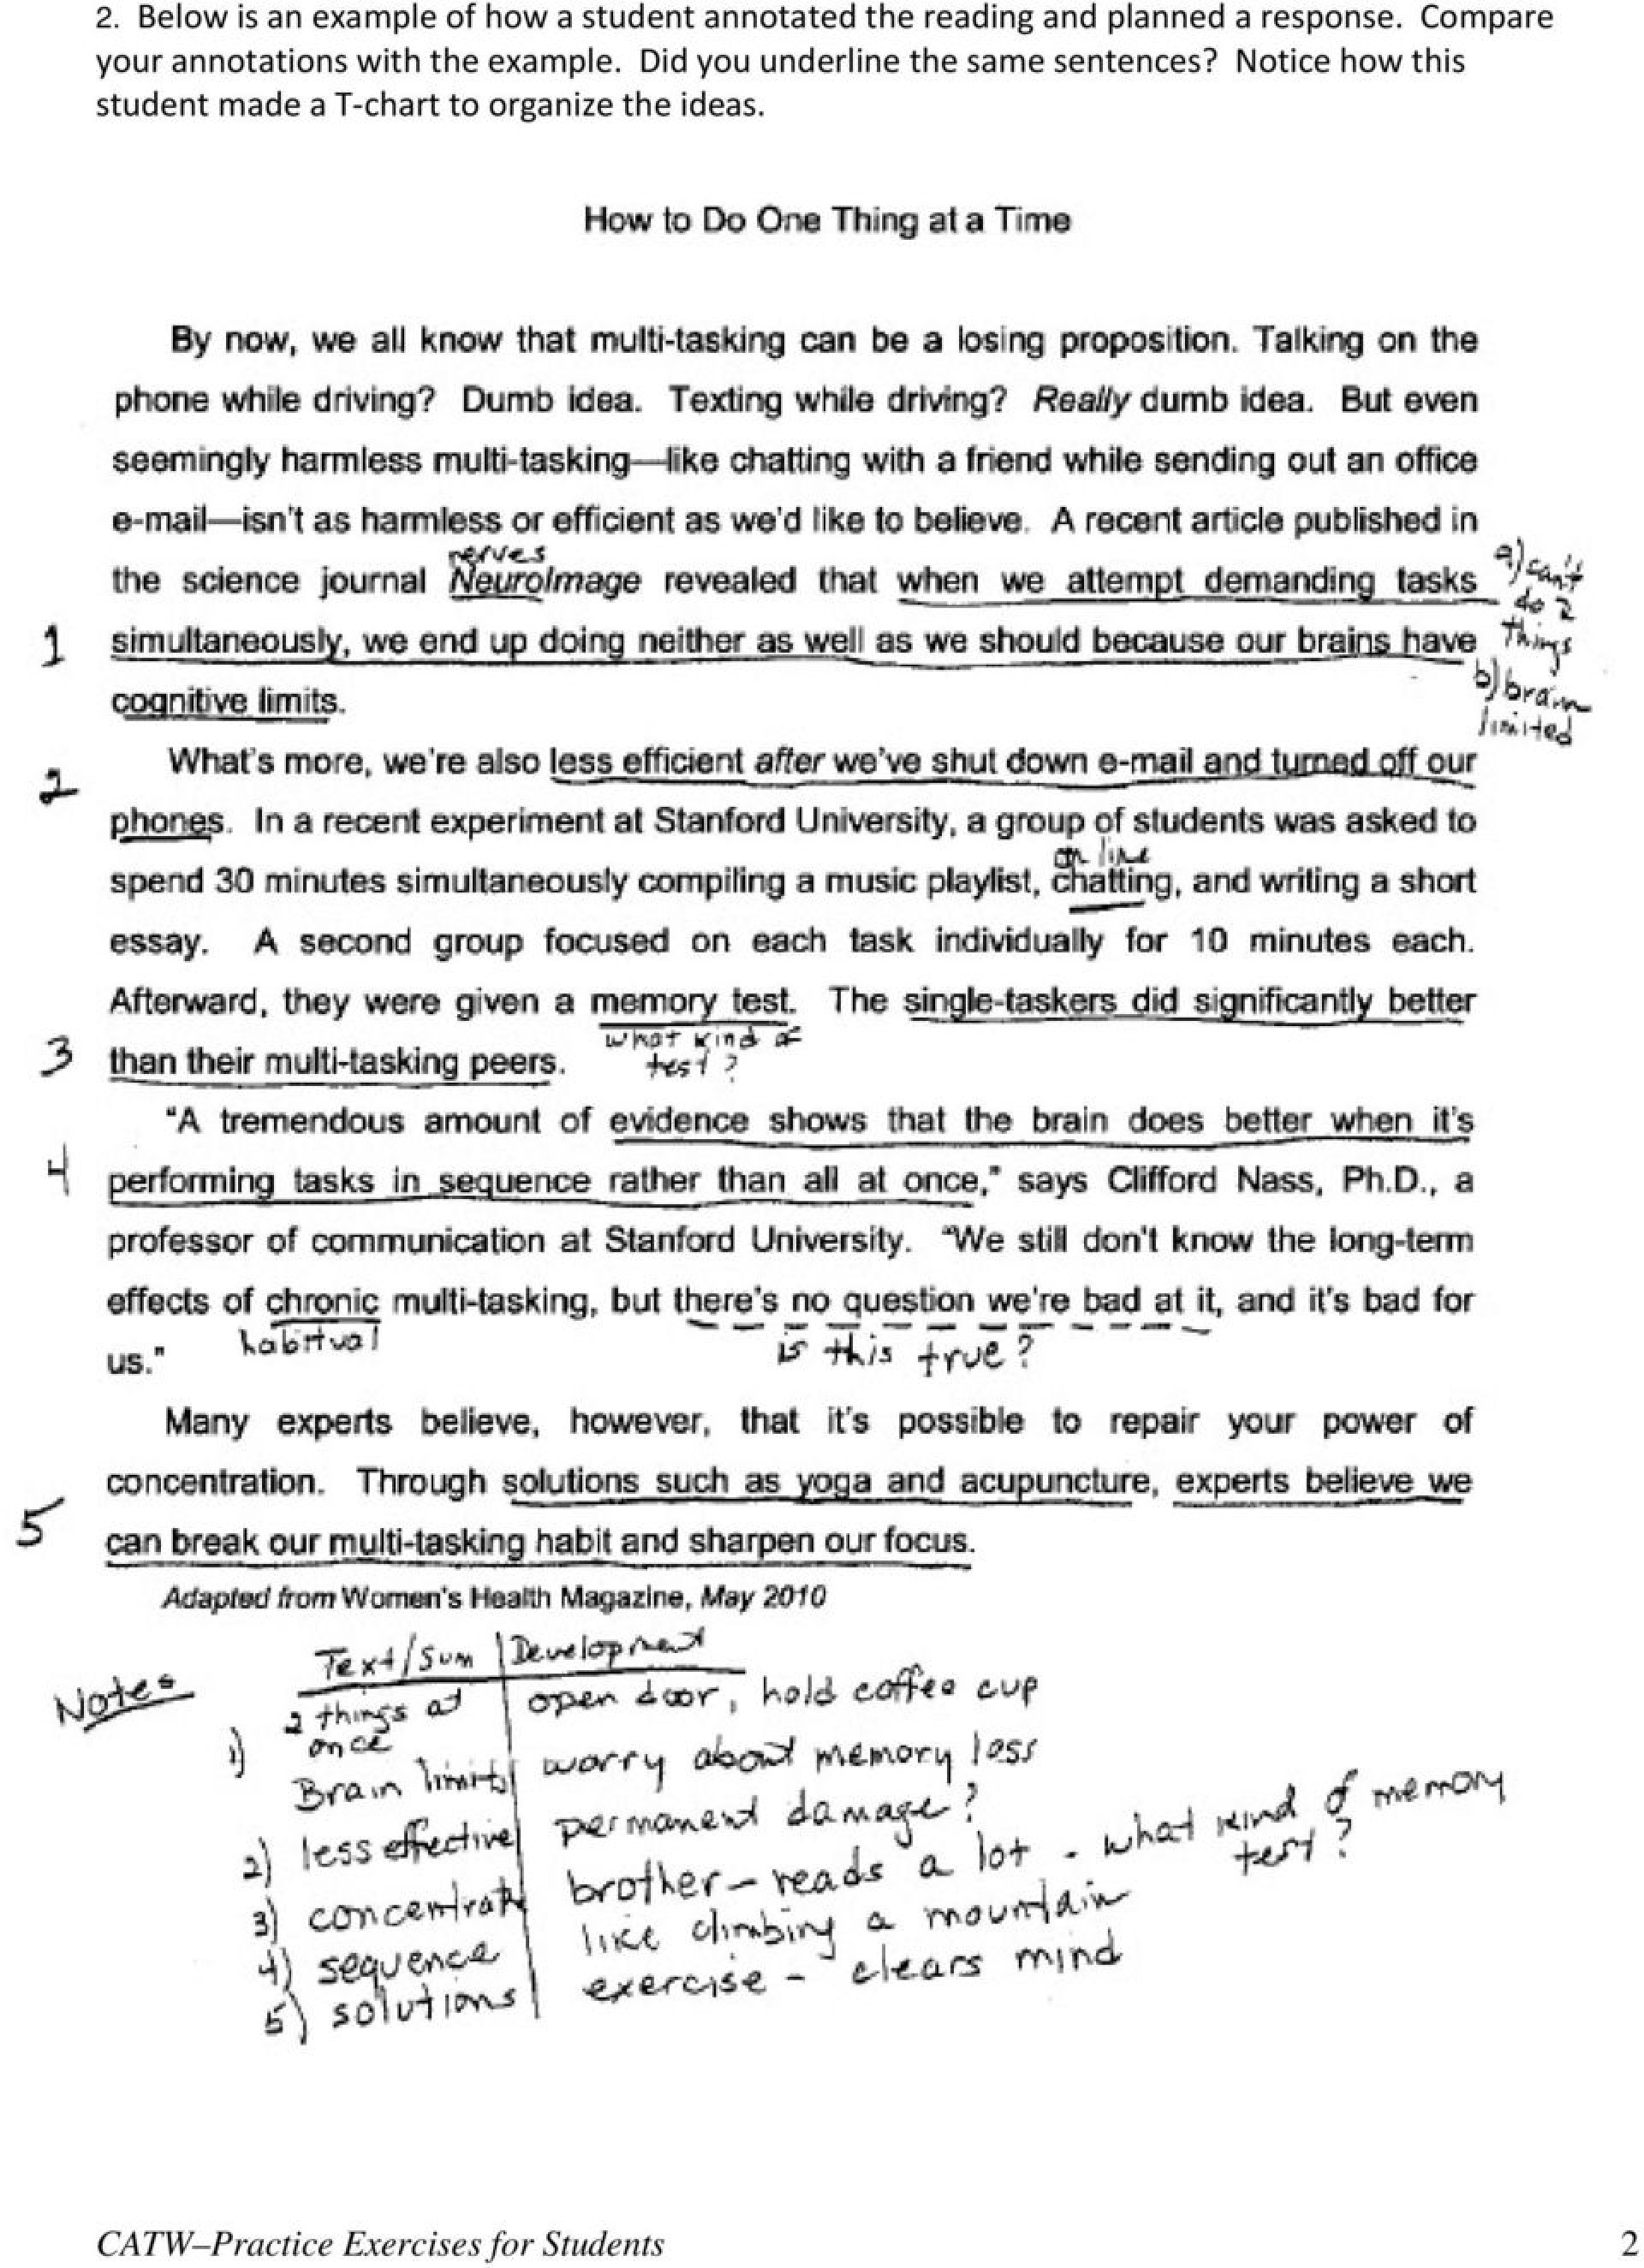 013 Research Paper Topics Ideas Page 3 Shocking Topic For College Students Computer Science Nursing 1920